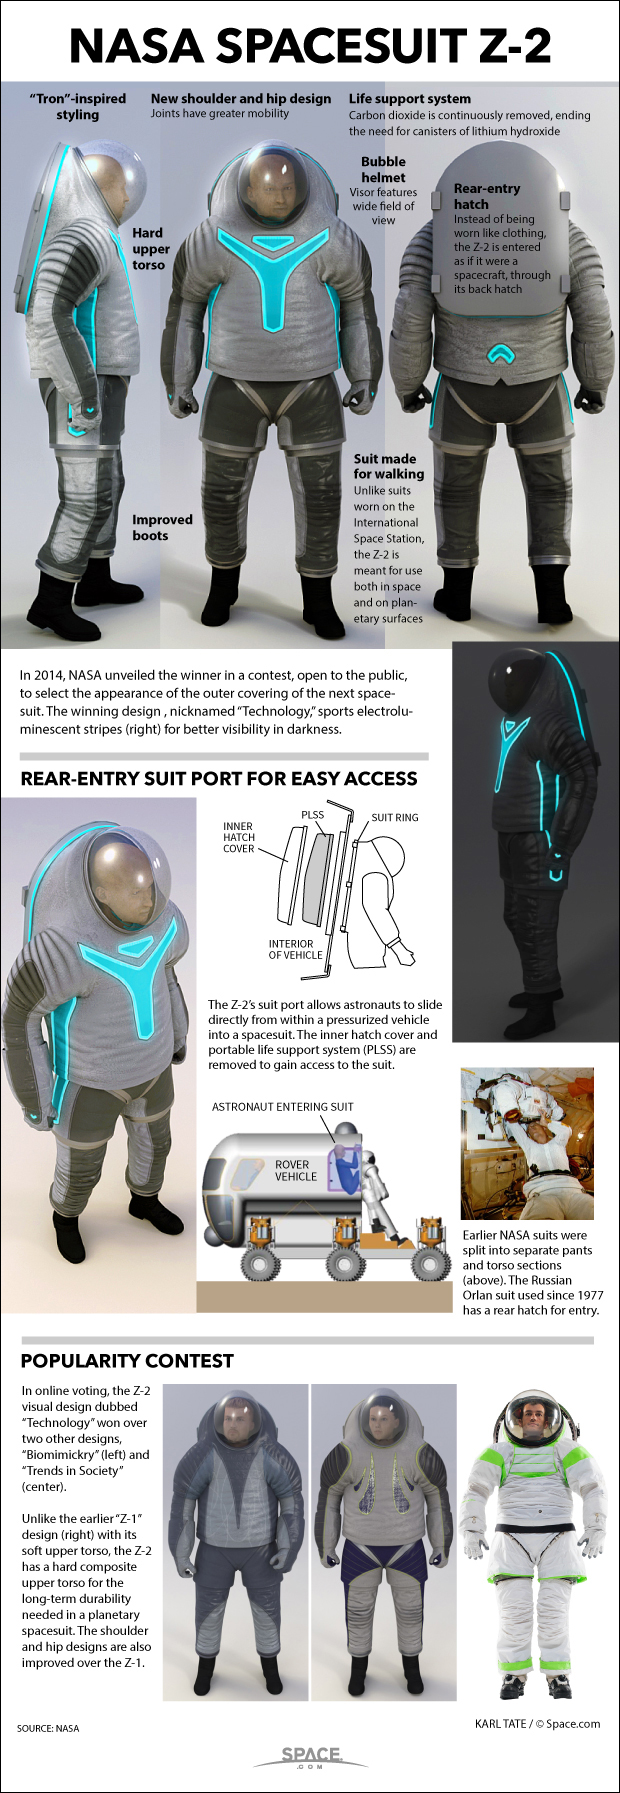 NASA's Futuristic Z-2 Spacesuit: How It Works (Infographic)